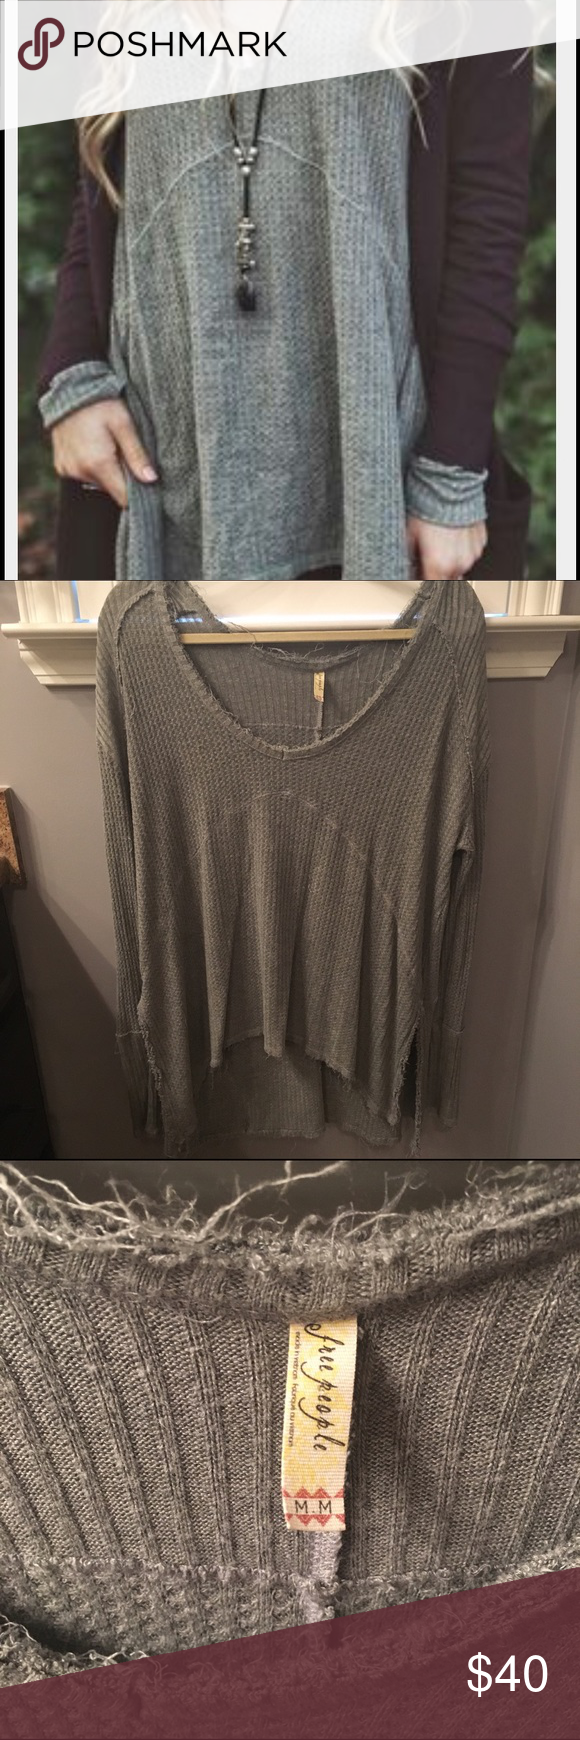 Free people shirt Oversized comfy sweater. Flowy. Free People Tops